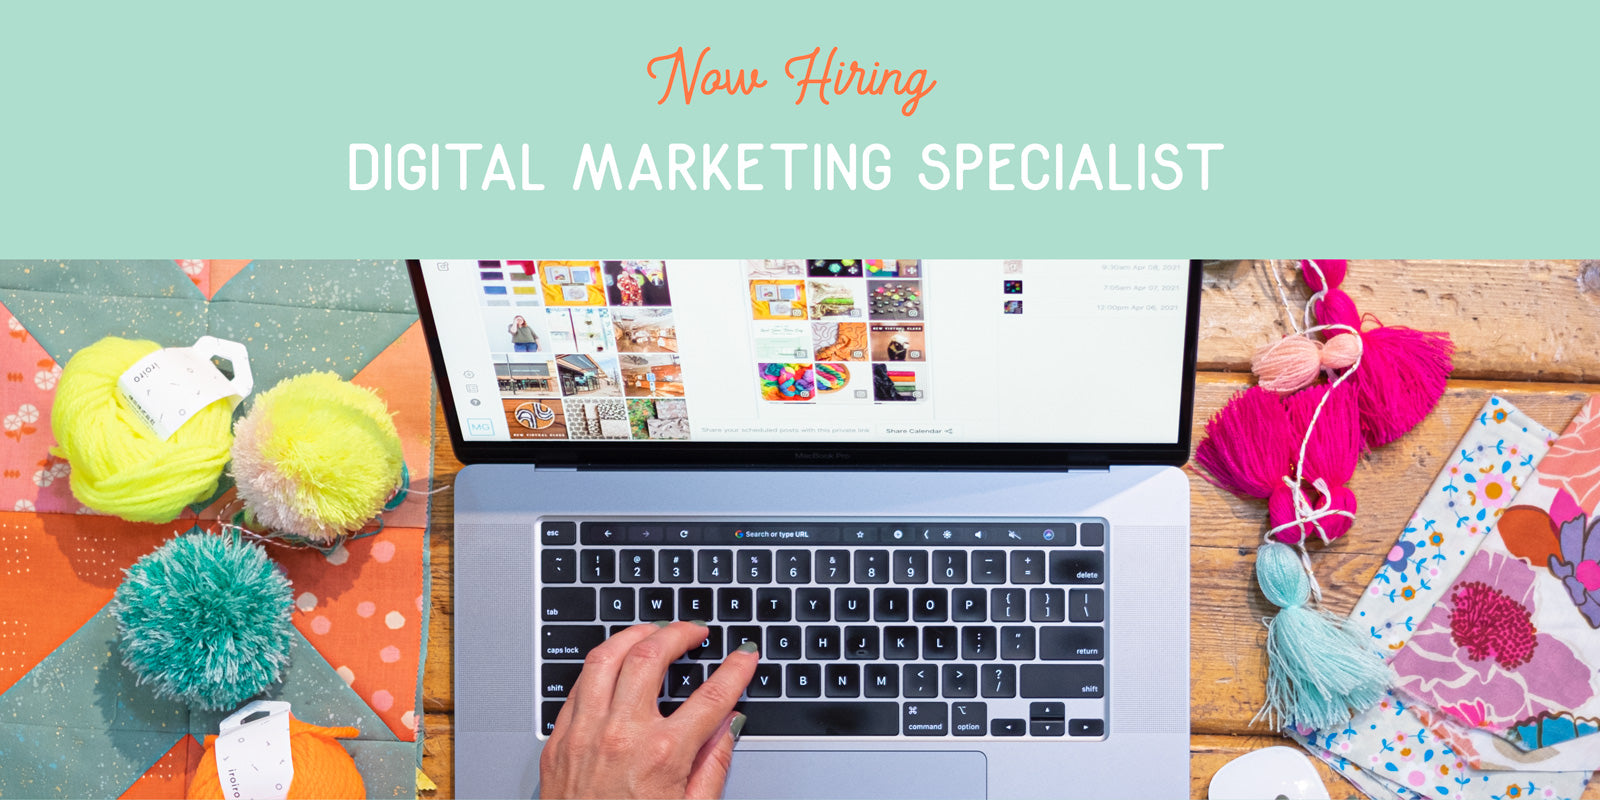 "Image of a macbook laptop surrounded by brightly colored craft supplies, and someones hands are typing on the keyboard. The screen shows they are working on scheduling social media posts. Text above the image says, ""Now Hiring Digital Marketing Specialist"""